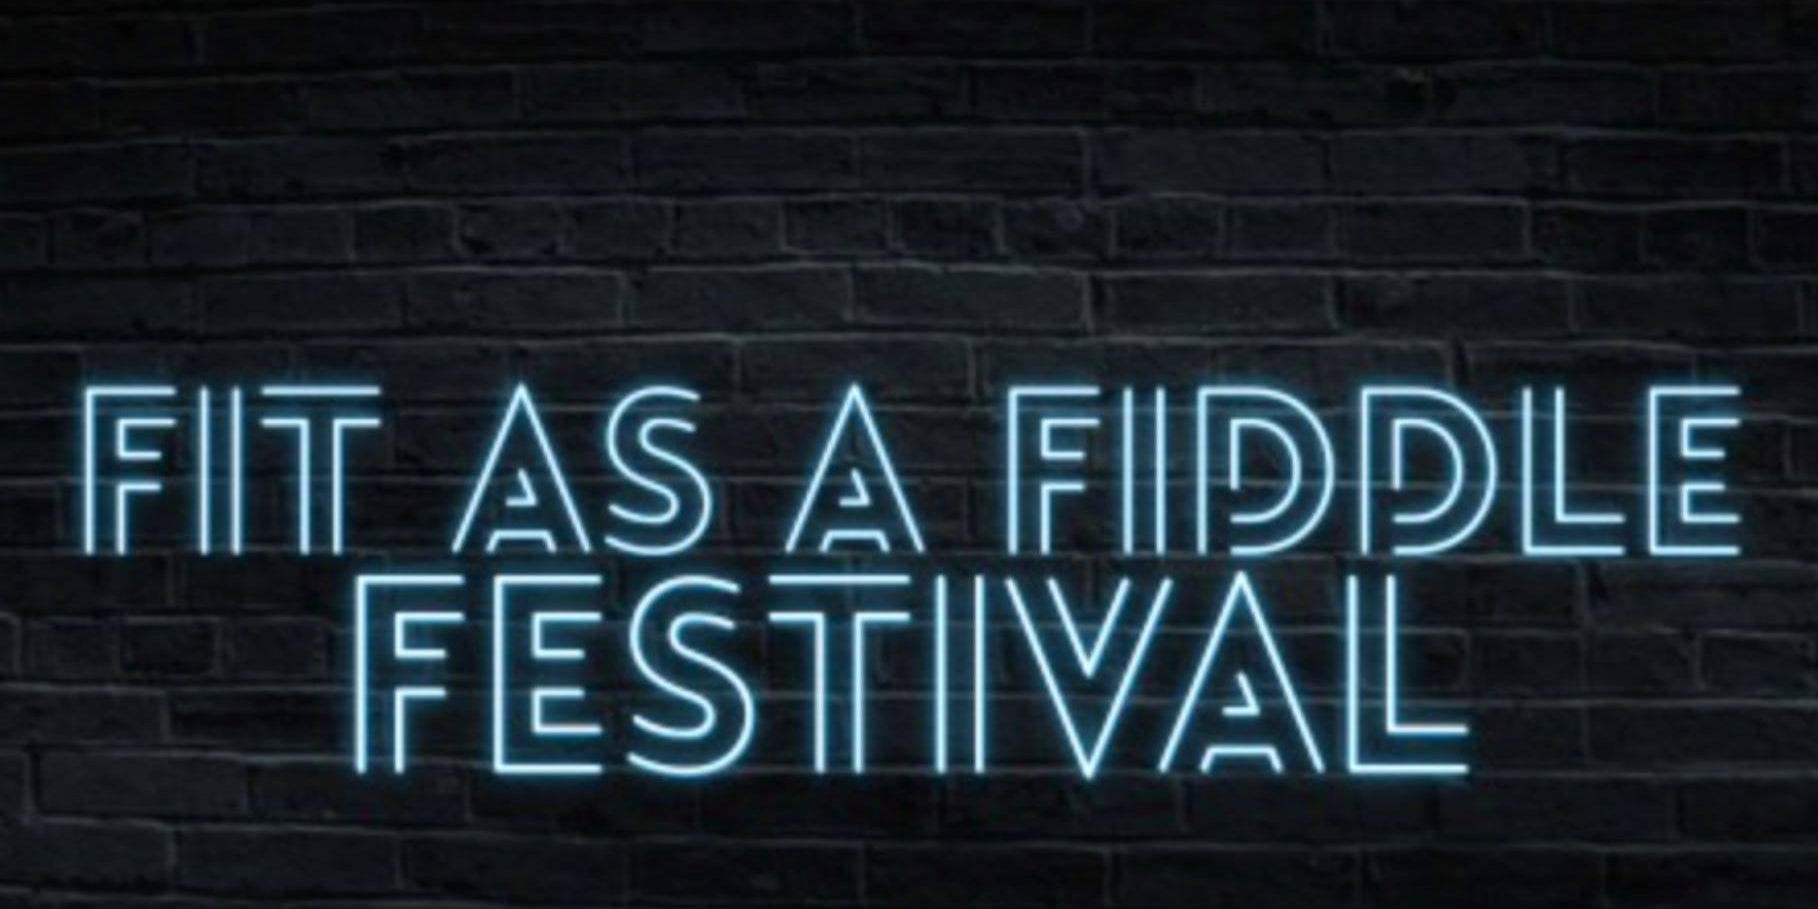 Fit As A Fiddle Festival